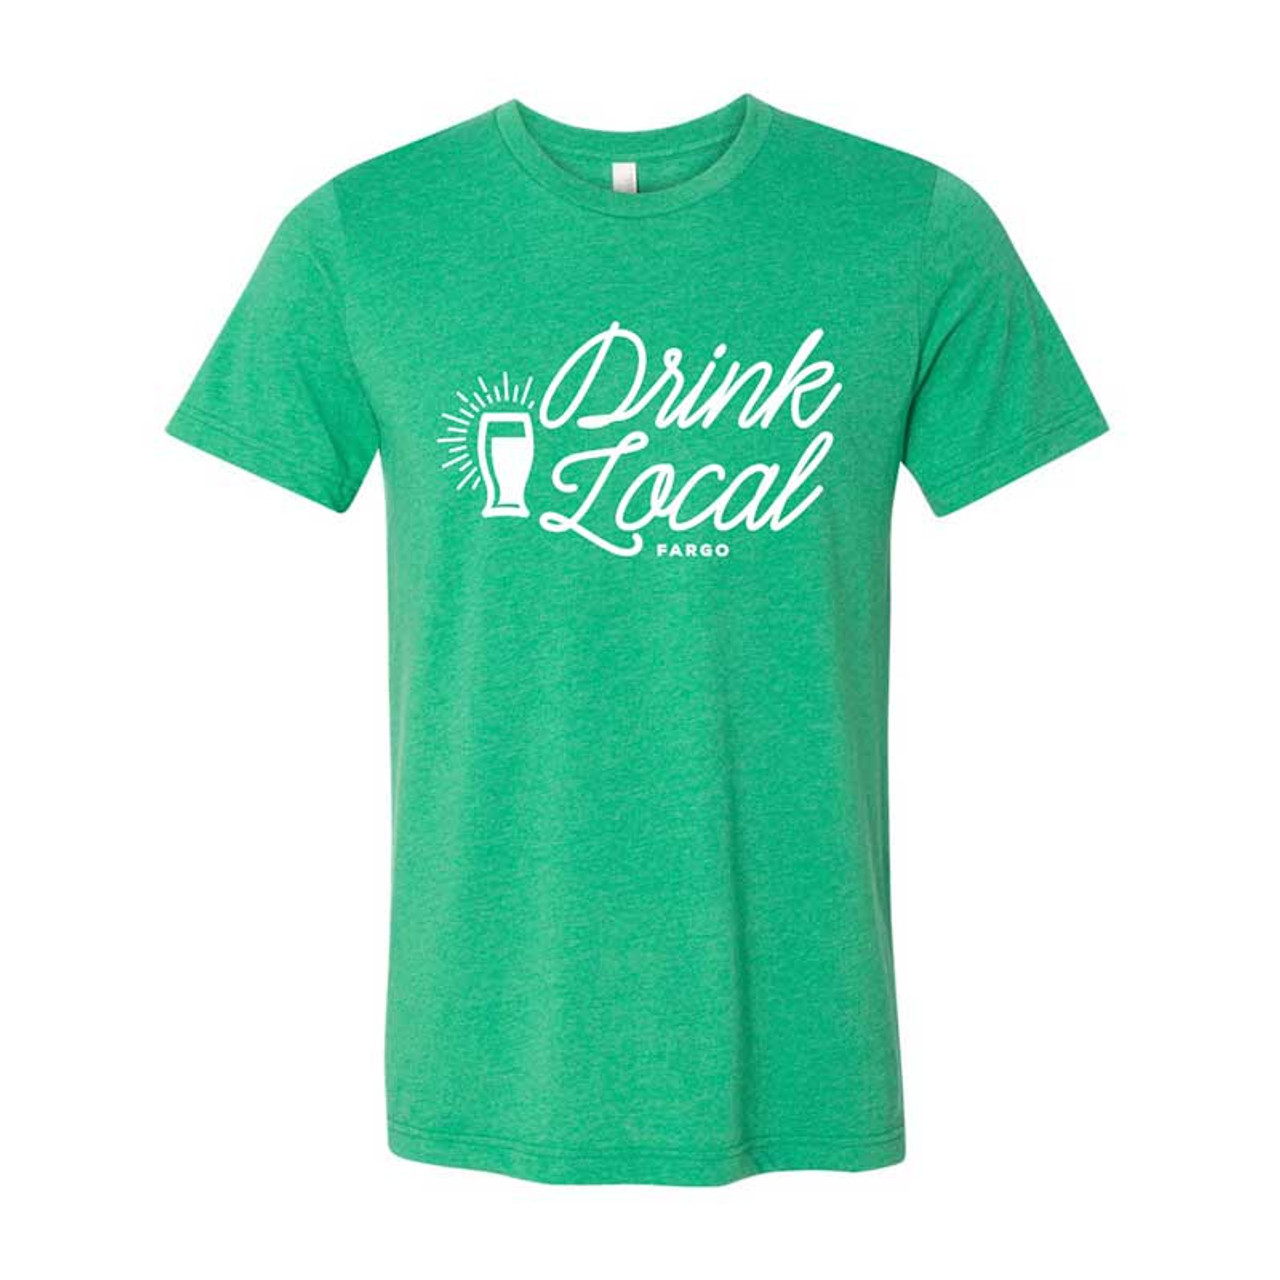 4d9f4e3f00 Shirts from Fargo - Drink Local Tee in Kelly Green